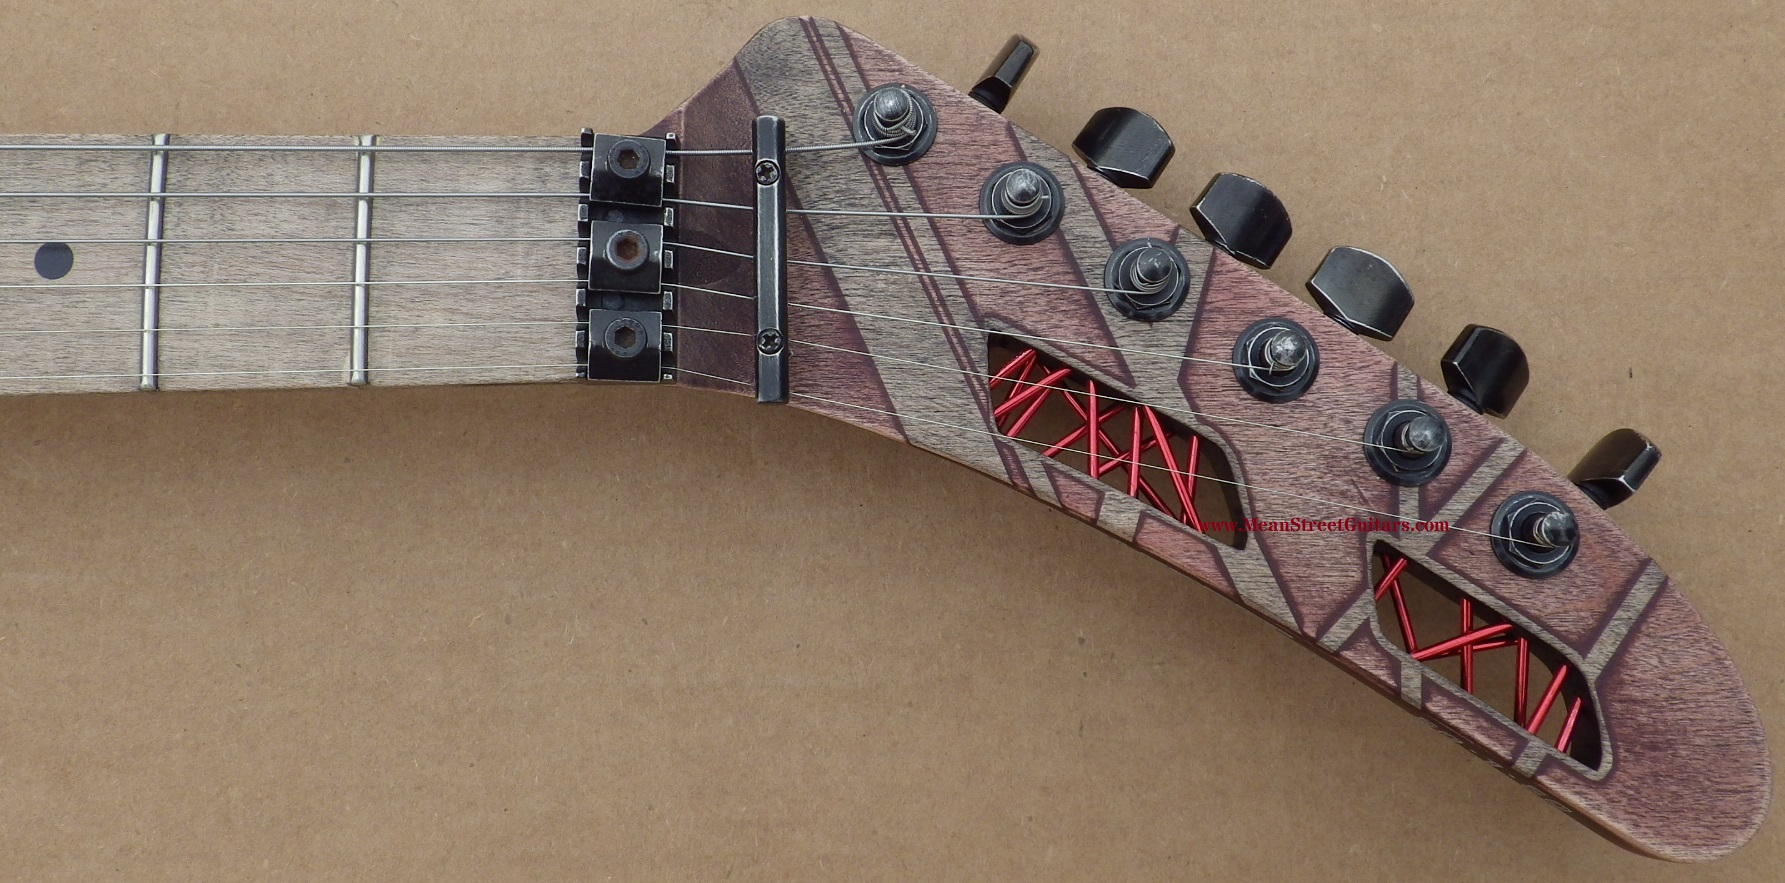 Mean Street Guitars Industrial 50 1 50 Pipeline 01 maroon pic 4.jpg